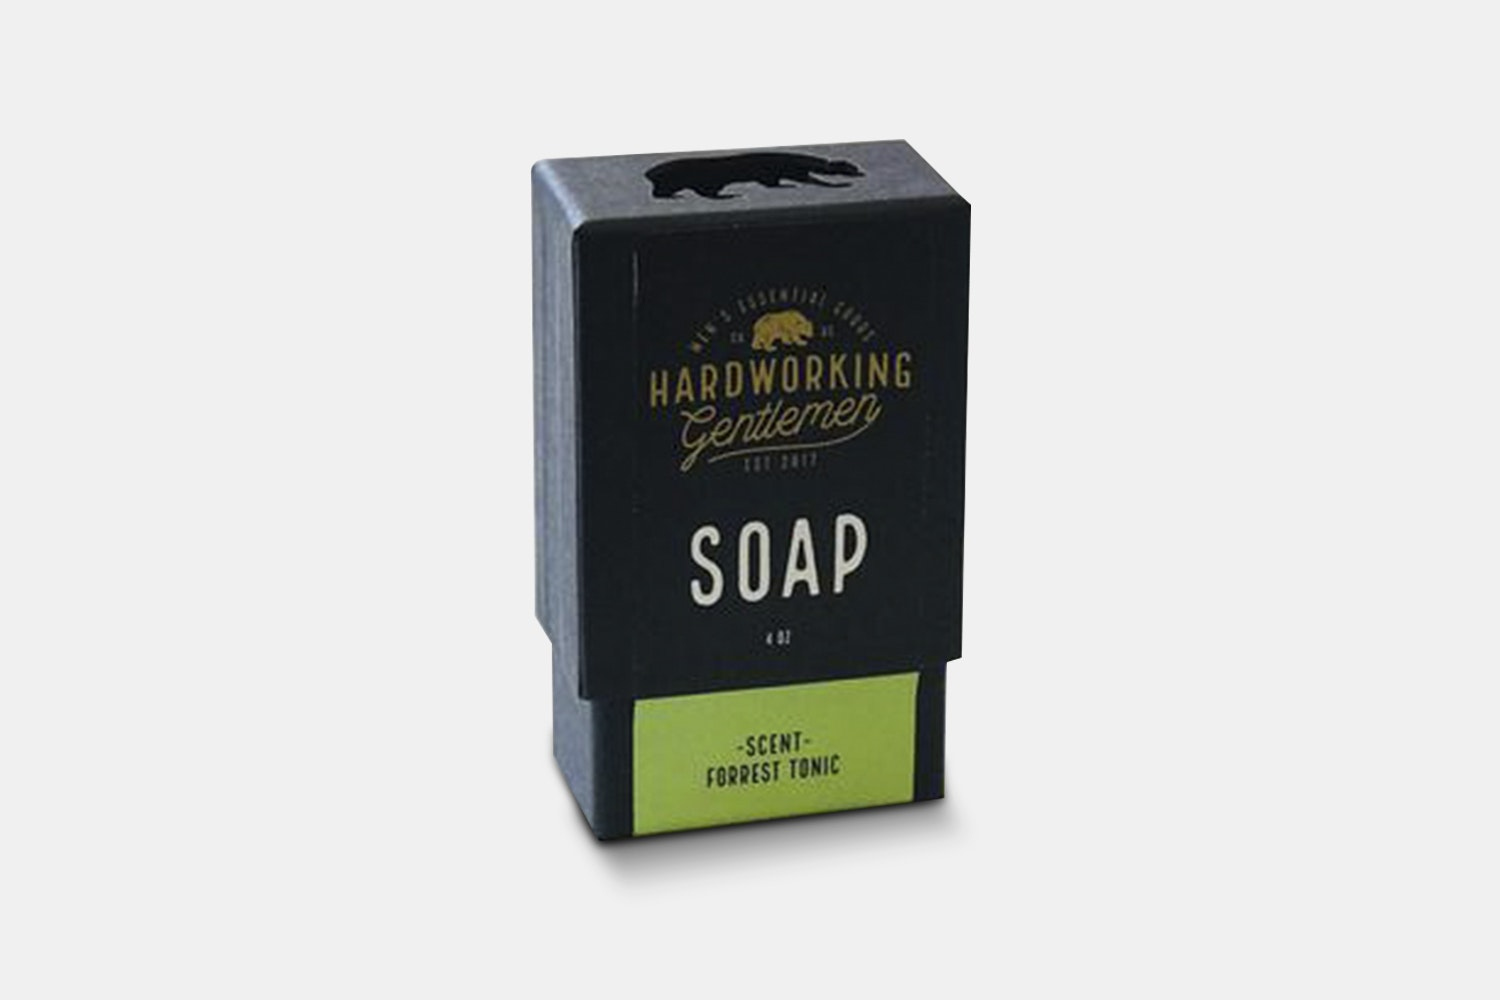 Organic Forest Tonic Soap